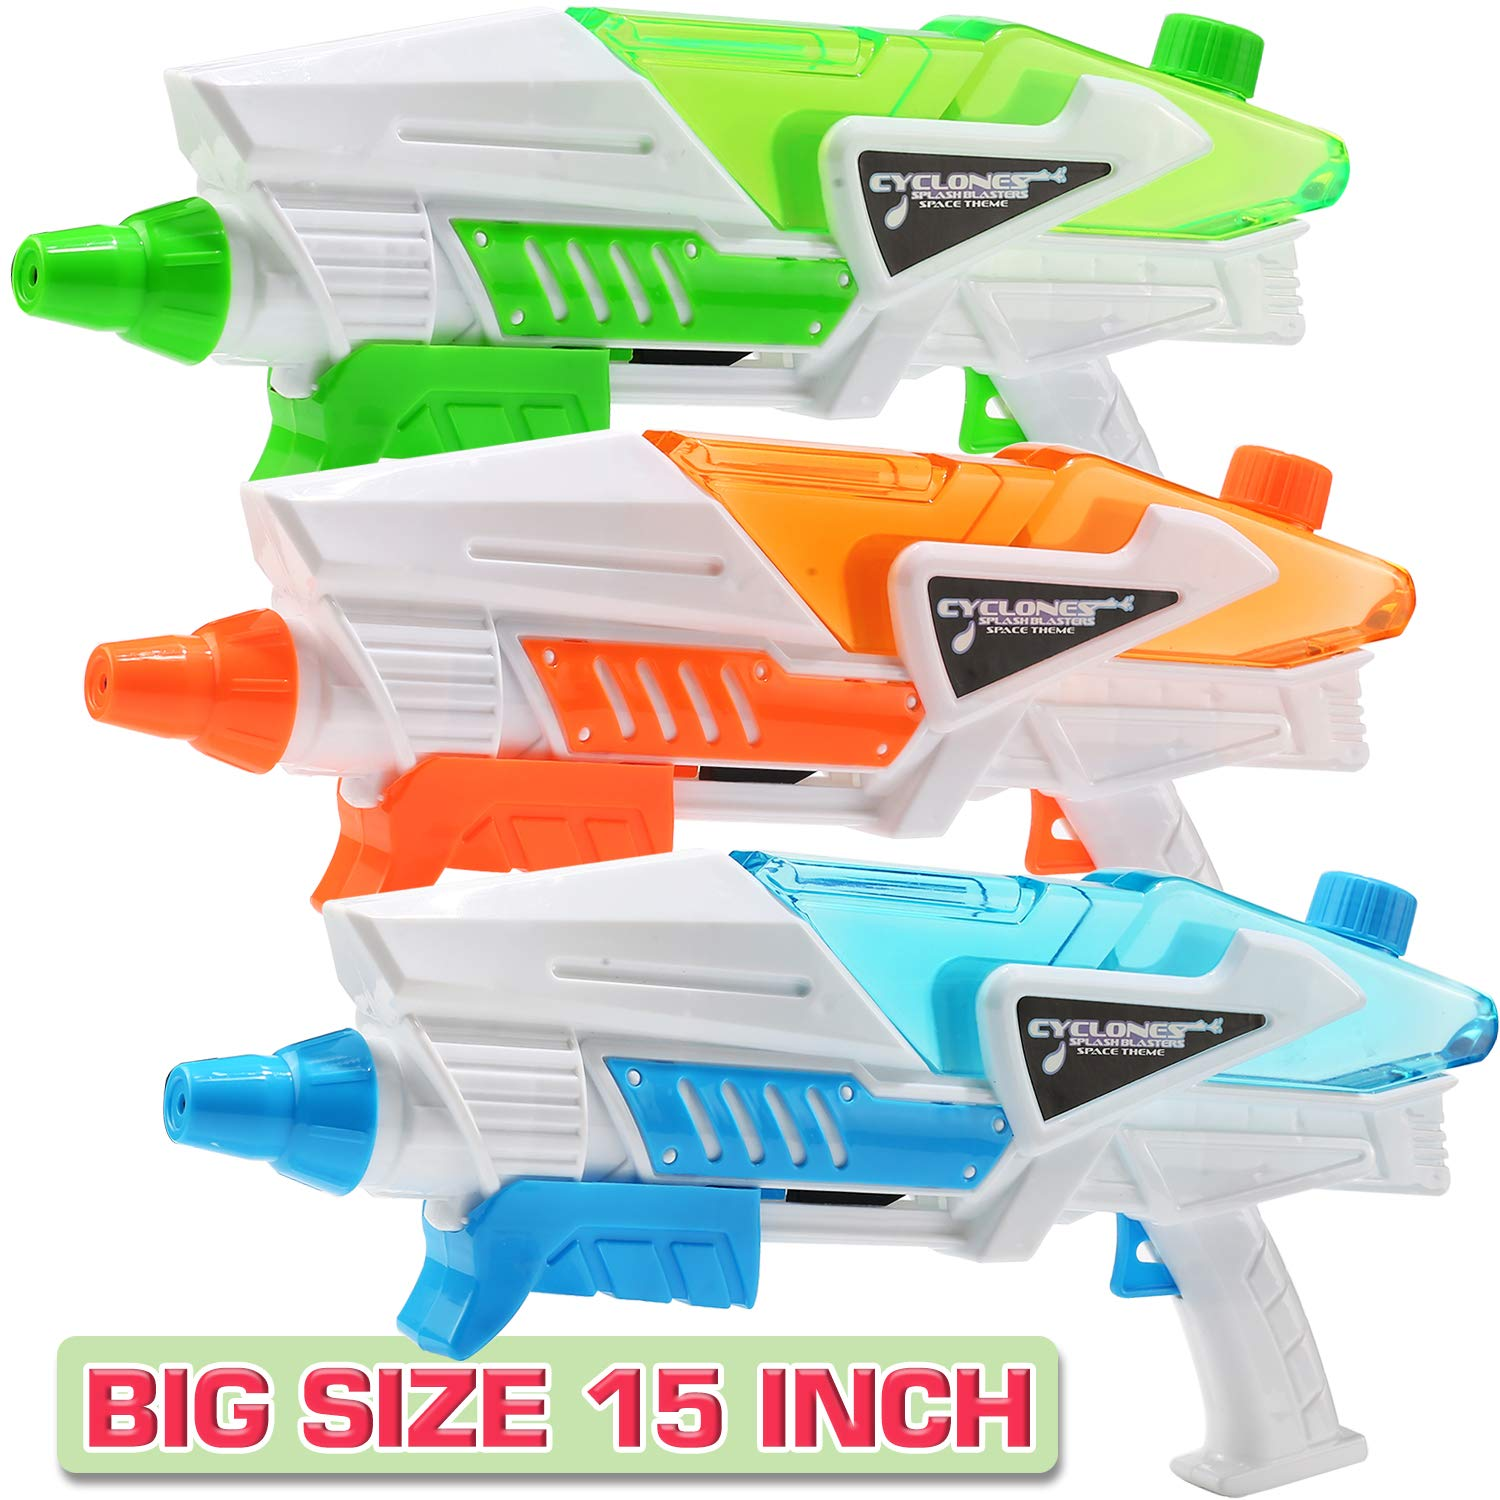 3 Pack Super Water Shooter Gun, High Capacity Water Soaker Blaster Squirt Toy for Swimming Pool Party Sand Beach Game, Outdoor Summer Water Fighting Toy for Adult Child Boy and Girl by Punertoy